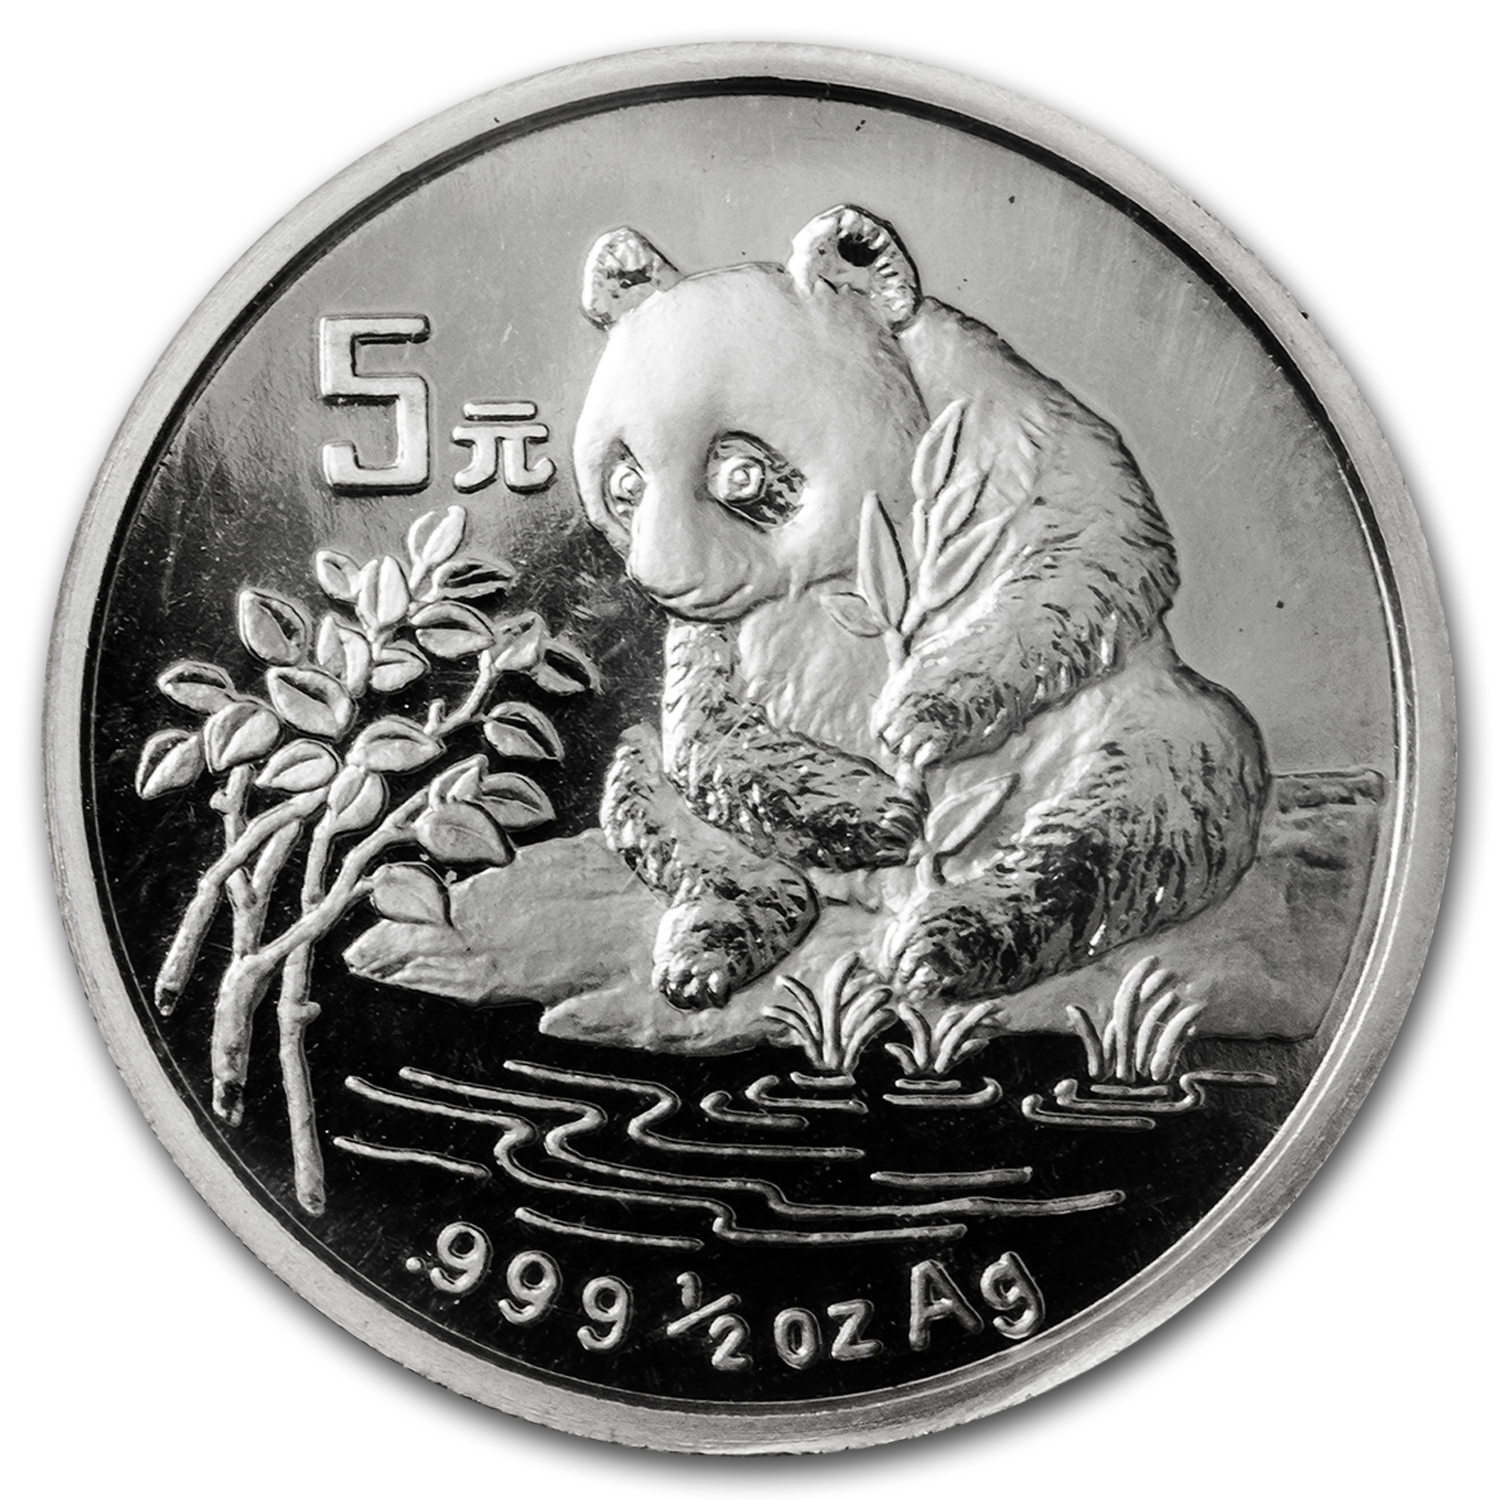 1996 - (1/2 oz) Silver Panda - 5 Yuan (Sealed)